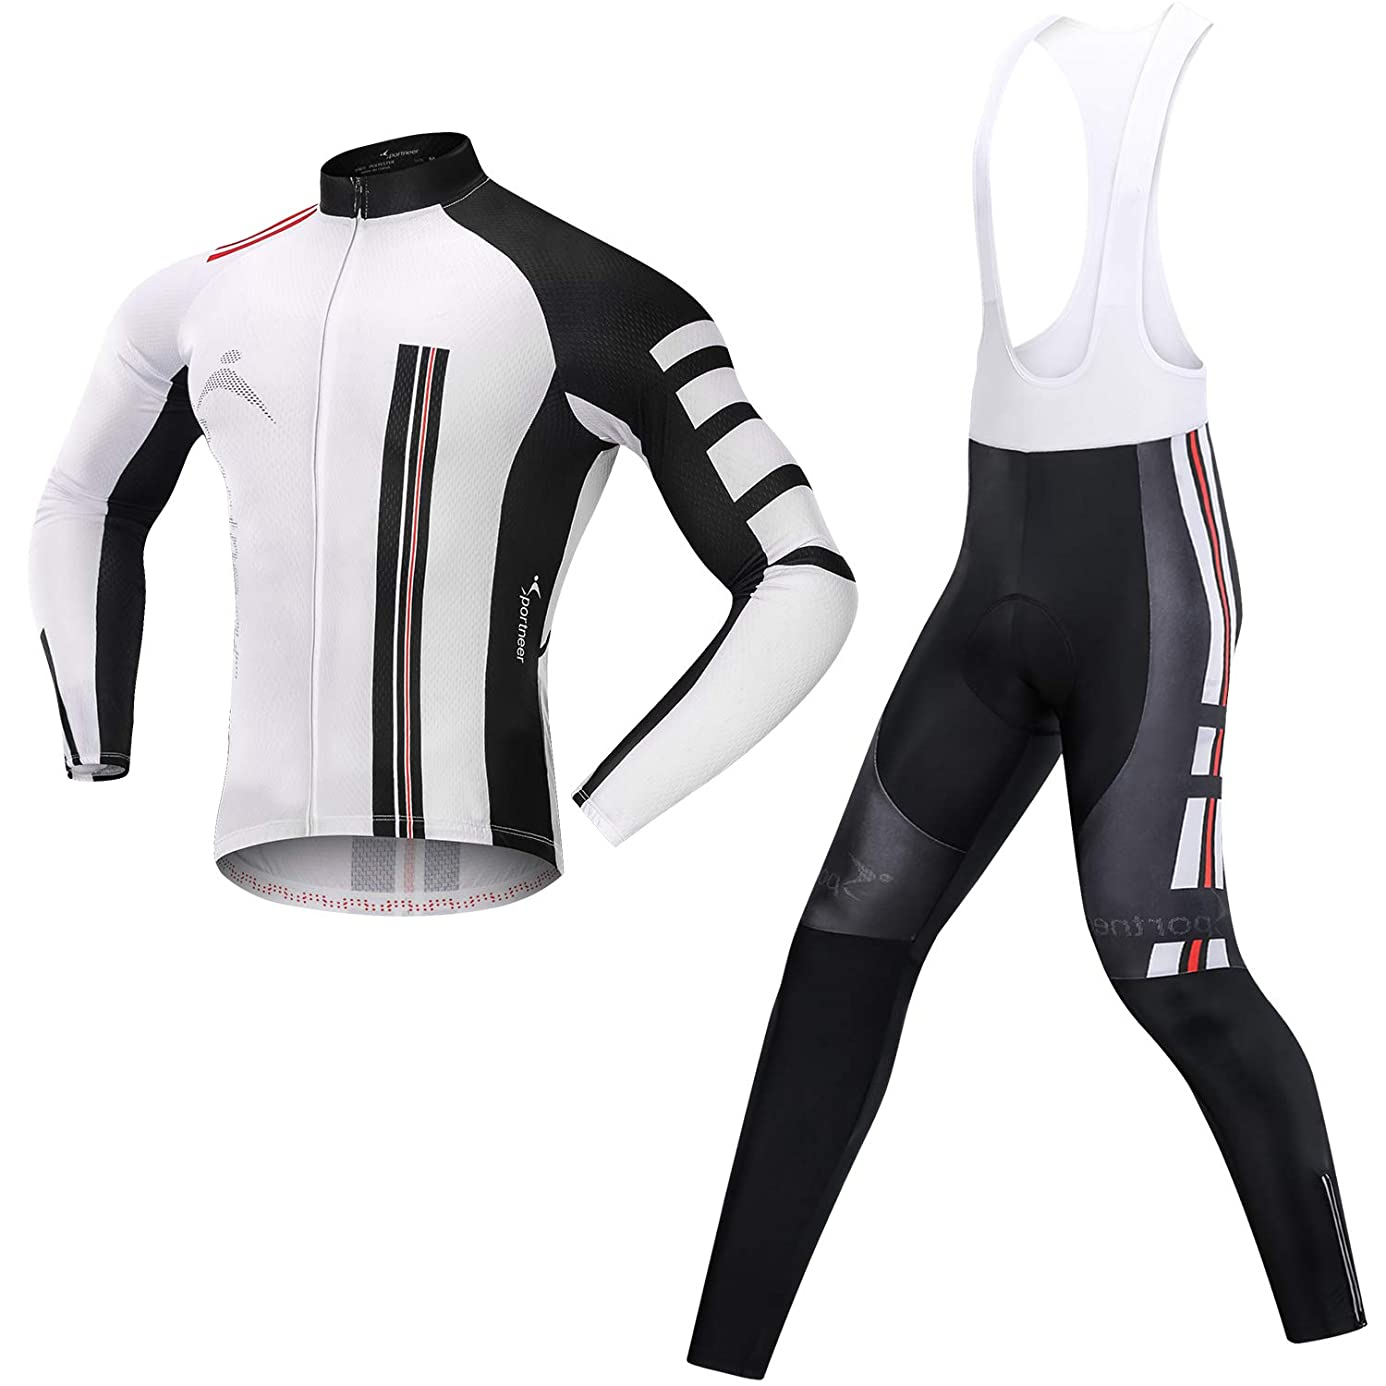 Men's Cycling Jersey Bicycle Bib Pants Set, 4D Padded Cycling Leggings with Long Sleeve Shirt Tights for Outdoor Cyclist Riding Bike Wear